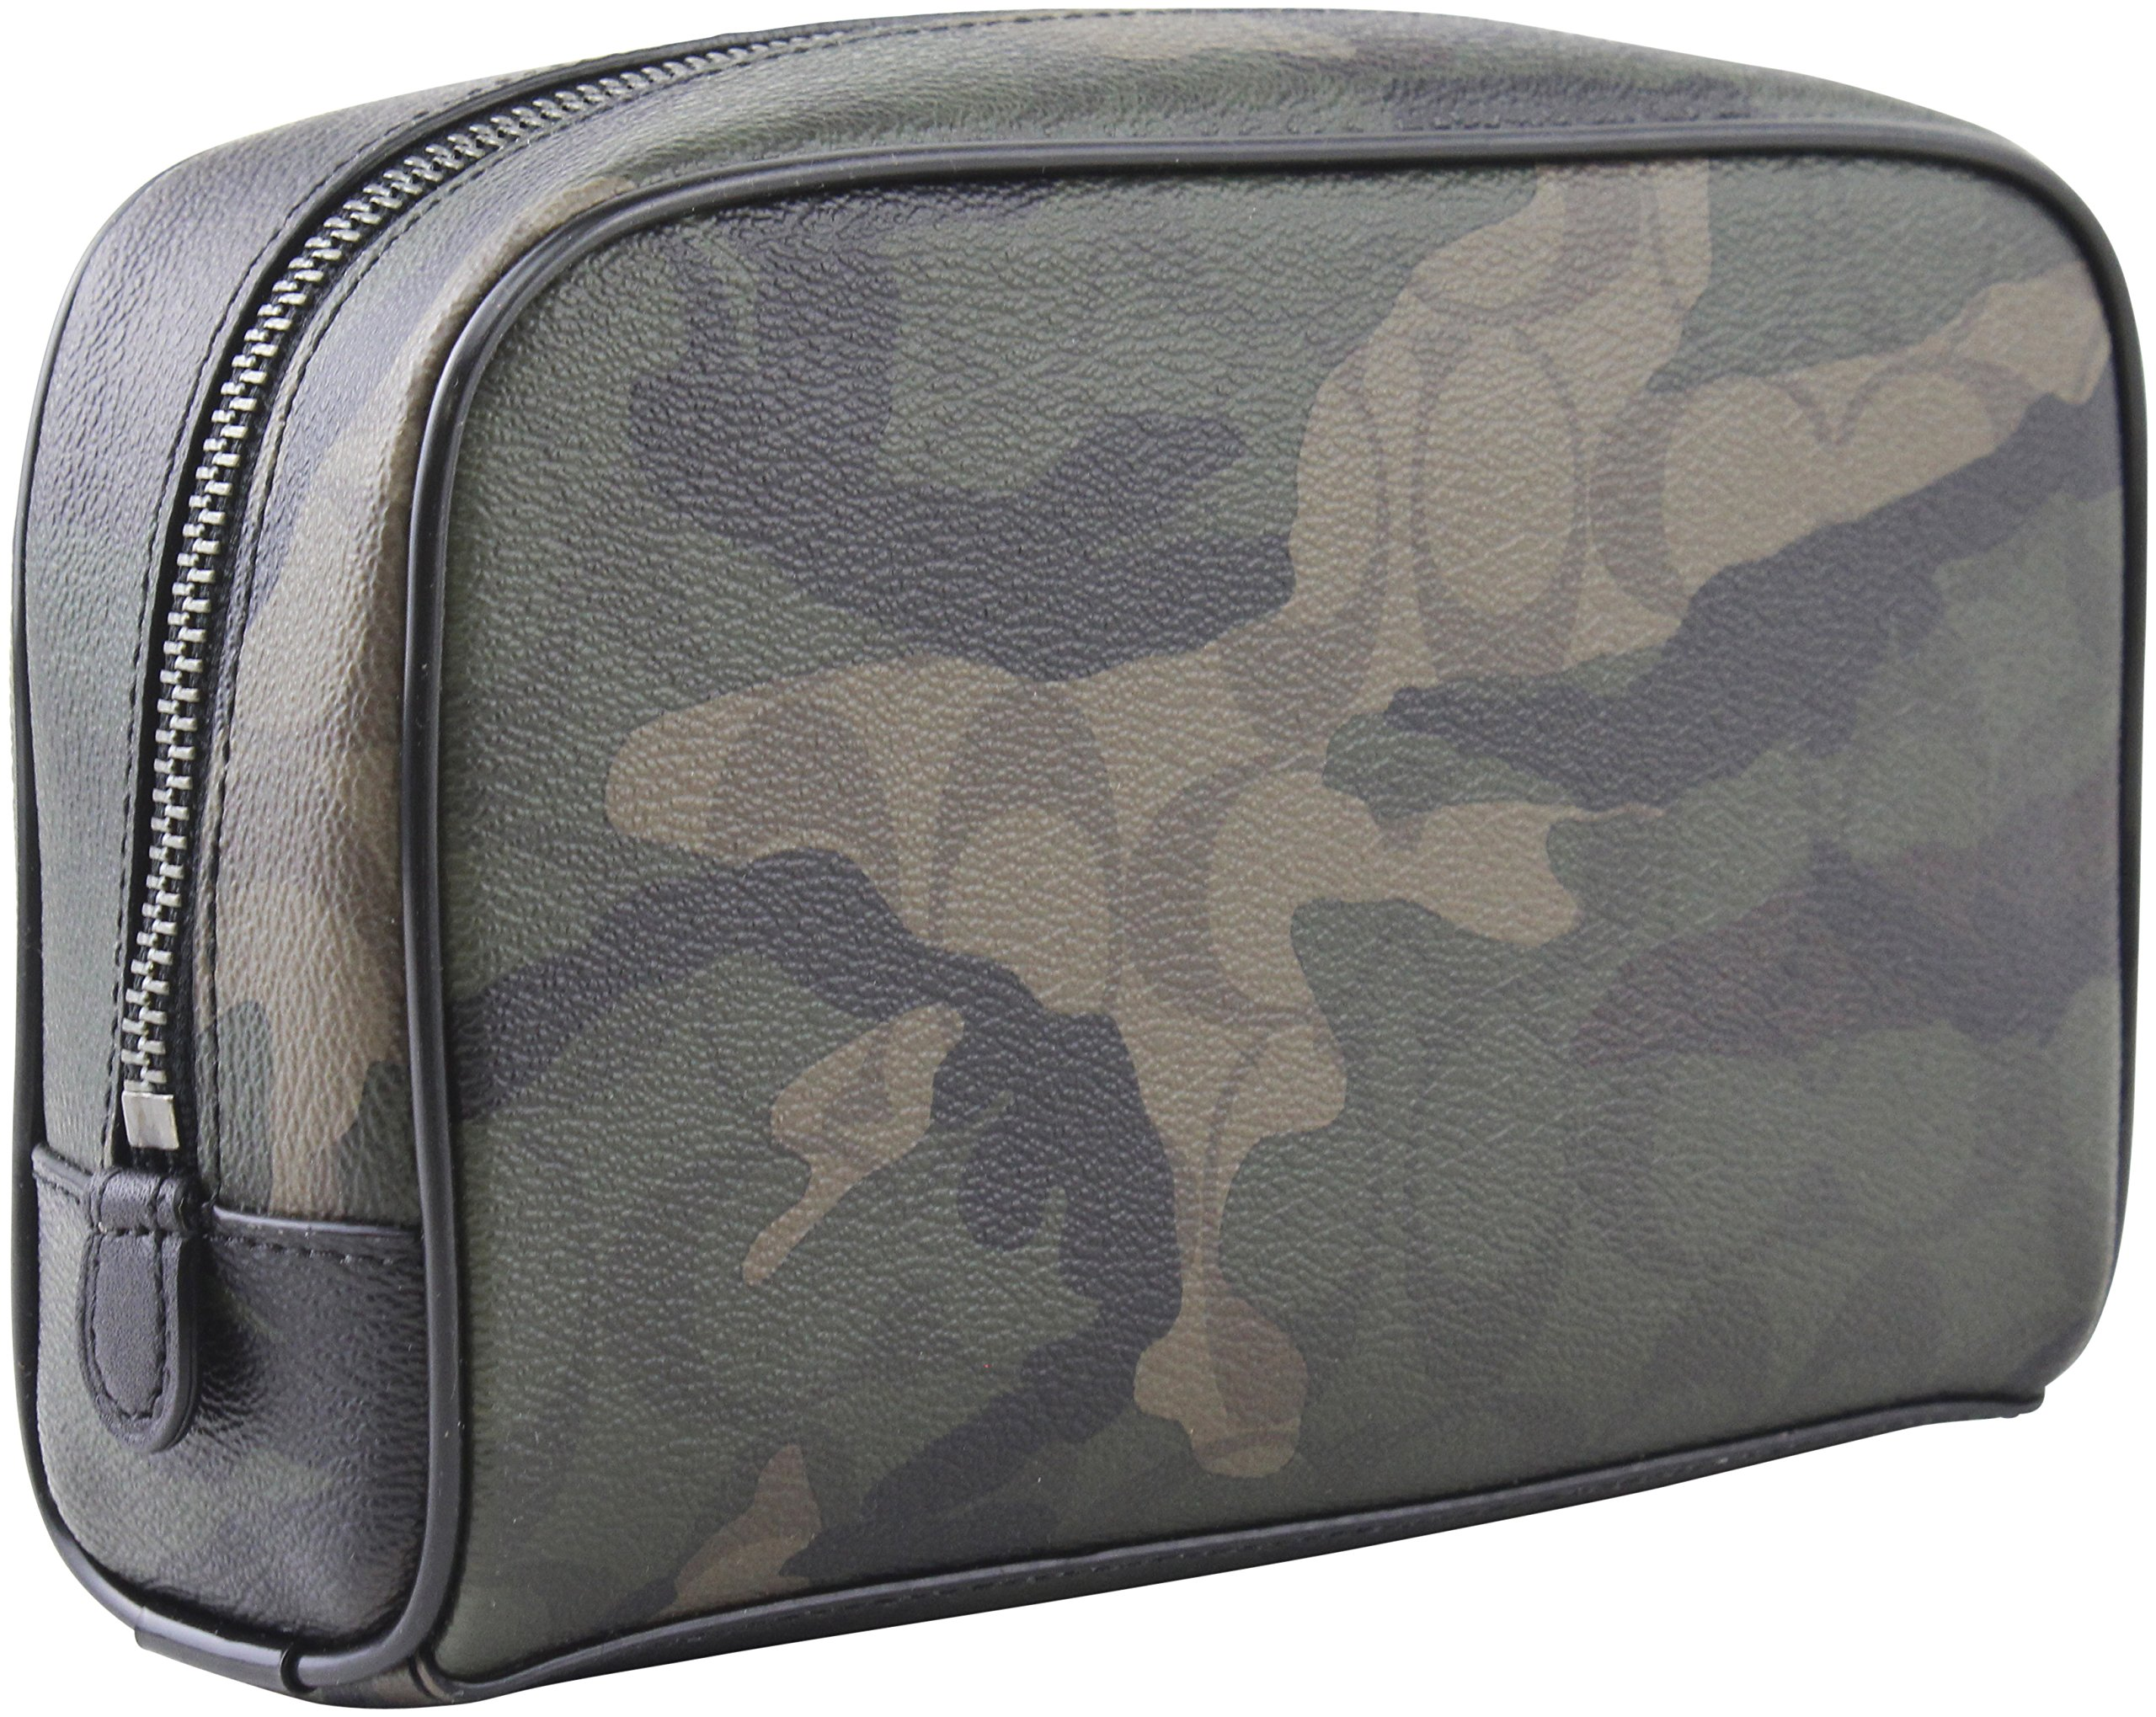 Coach Overnight Travel Kit in Signature Camo Coated Canvas Bag, Style F12008, Mahogan/ Dark Green Camo by Coach (Image #2)